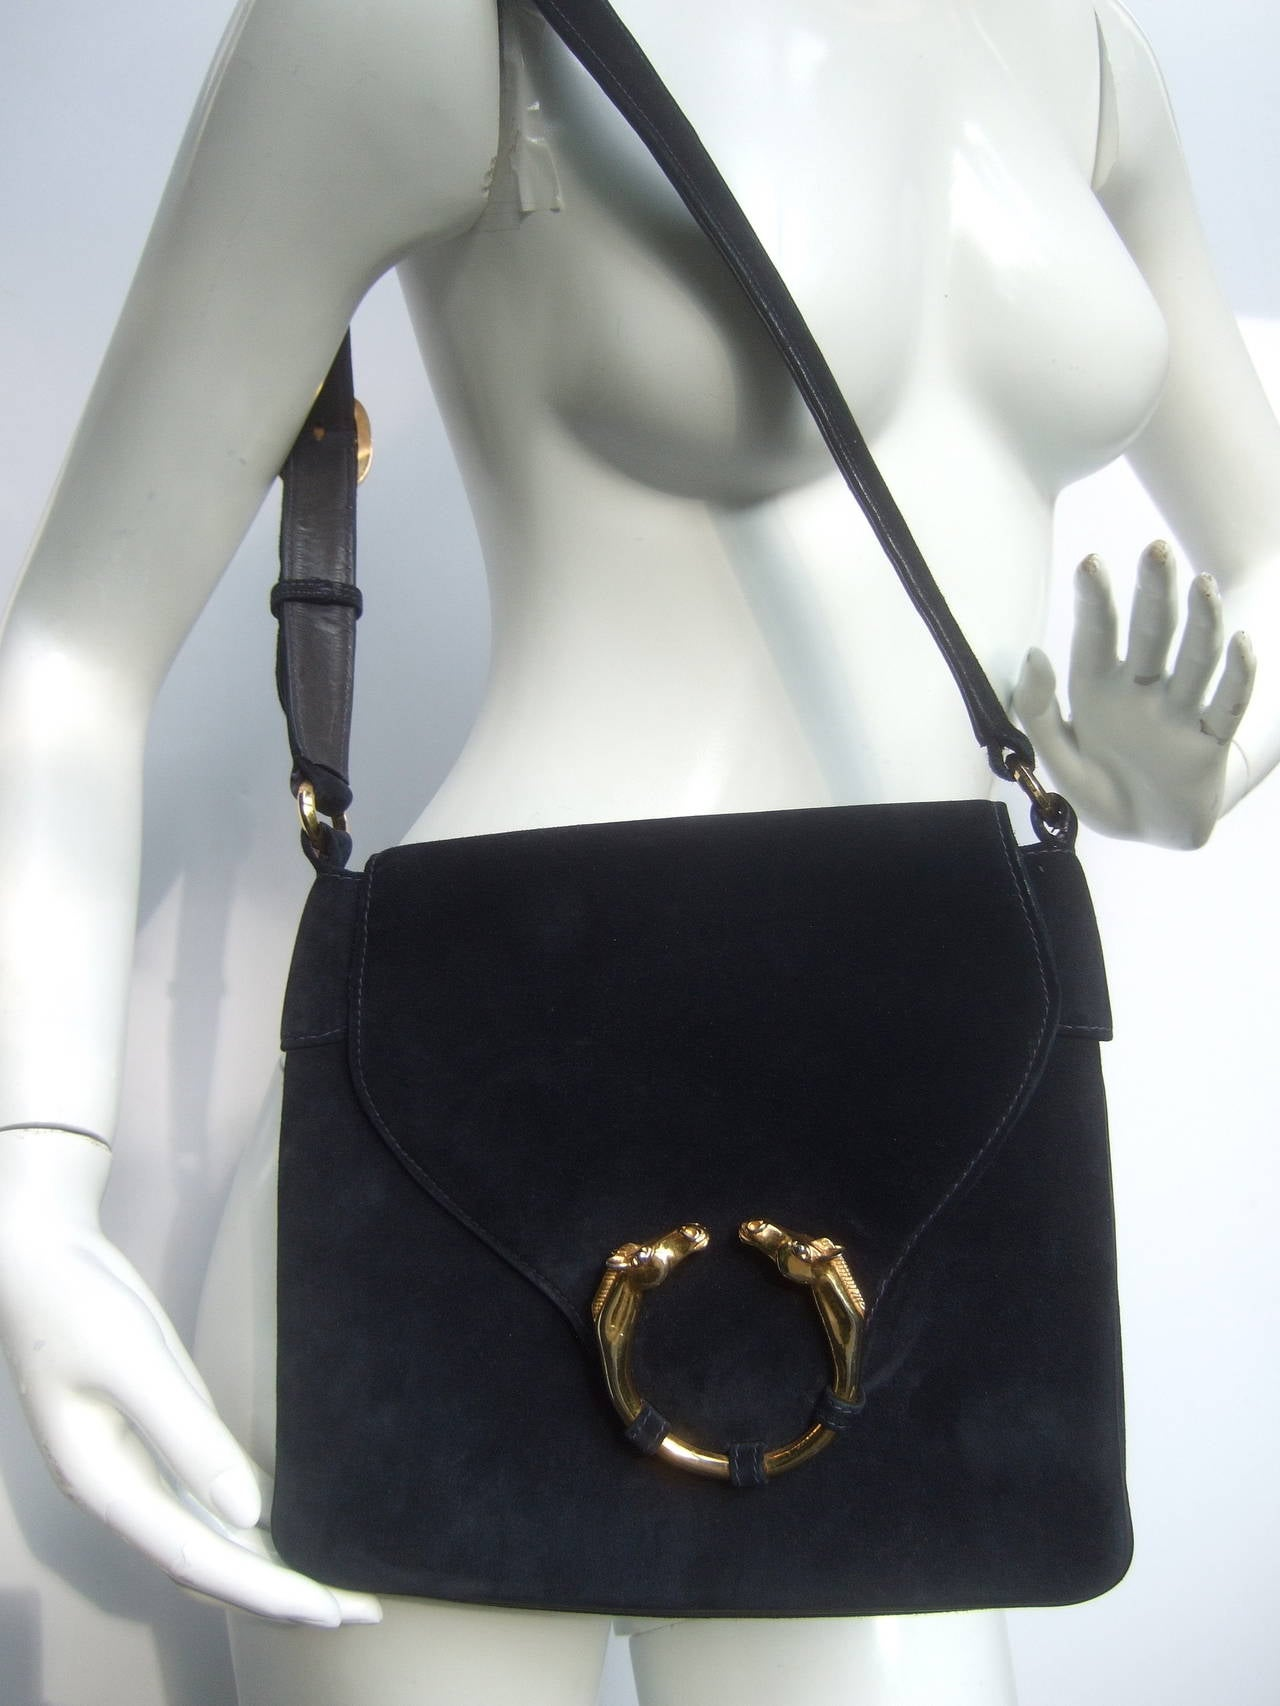 Gucci Equine Emblem Midnight Blue Suede Shoulder Bag c 1970 For Sale 1